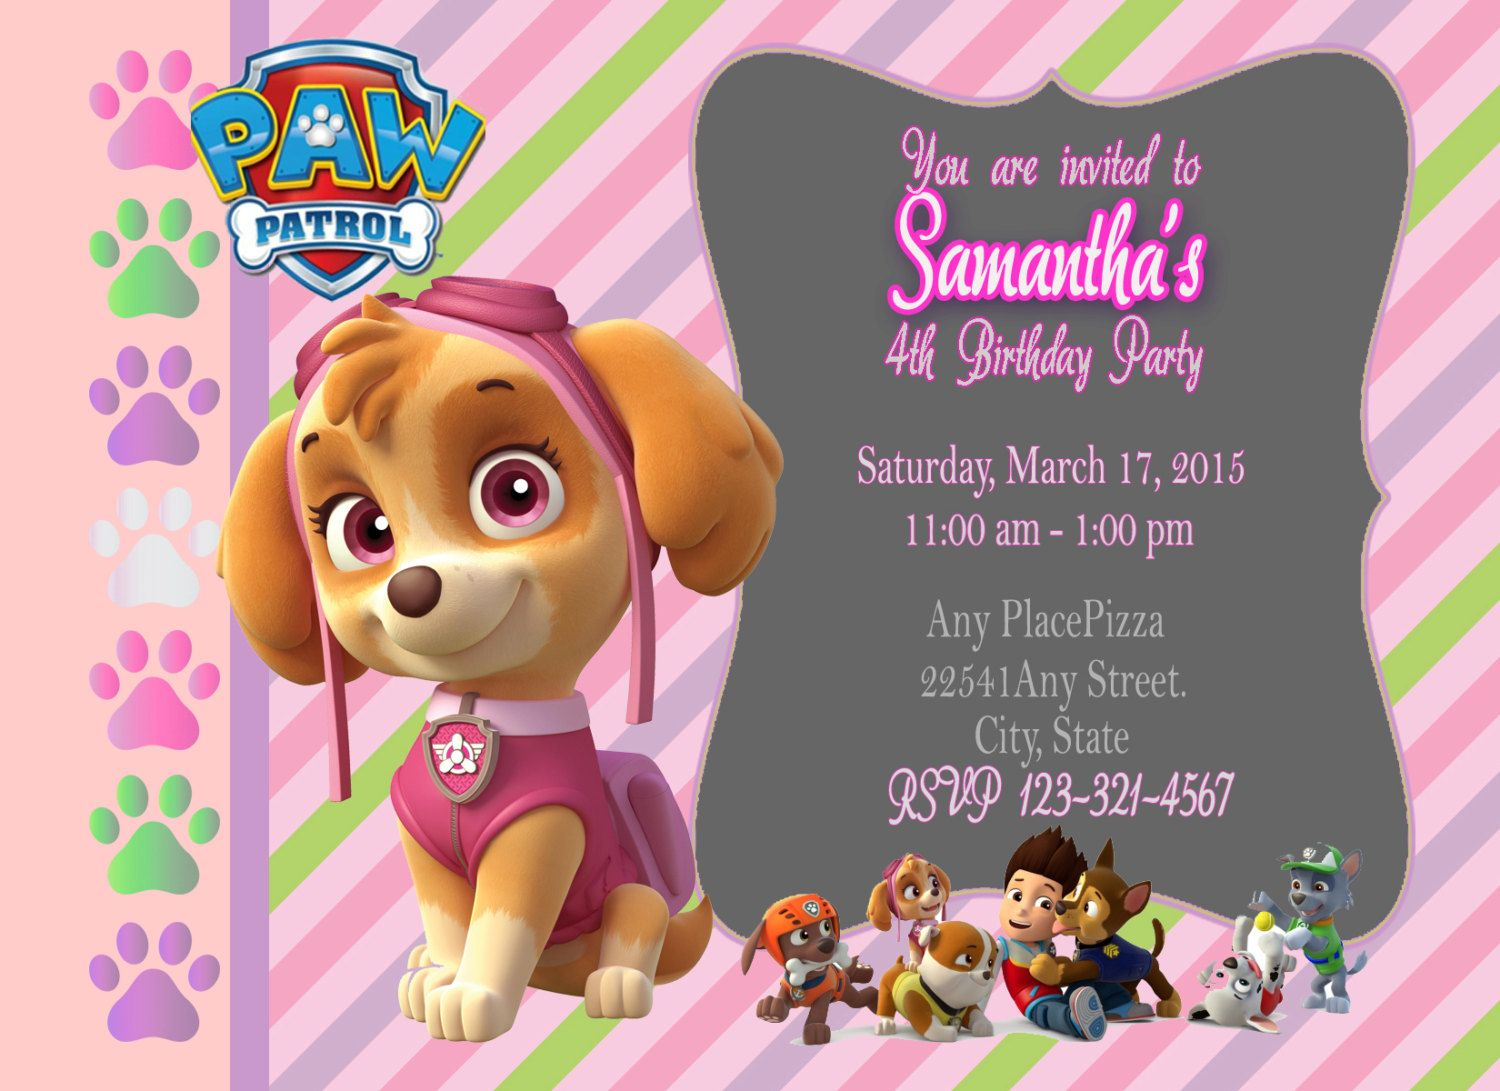 Paw Patrol Birthday Invitation Skye Girl Puppy By PrintDesignsByMimi On Etsy